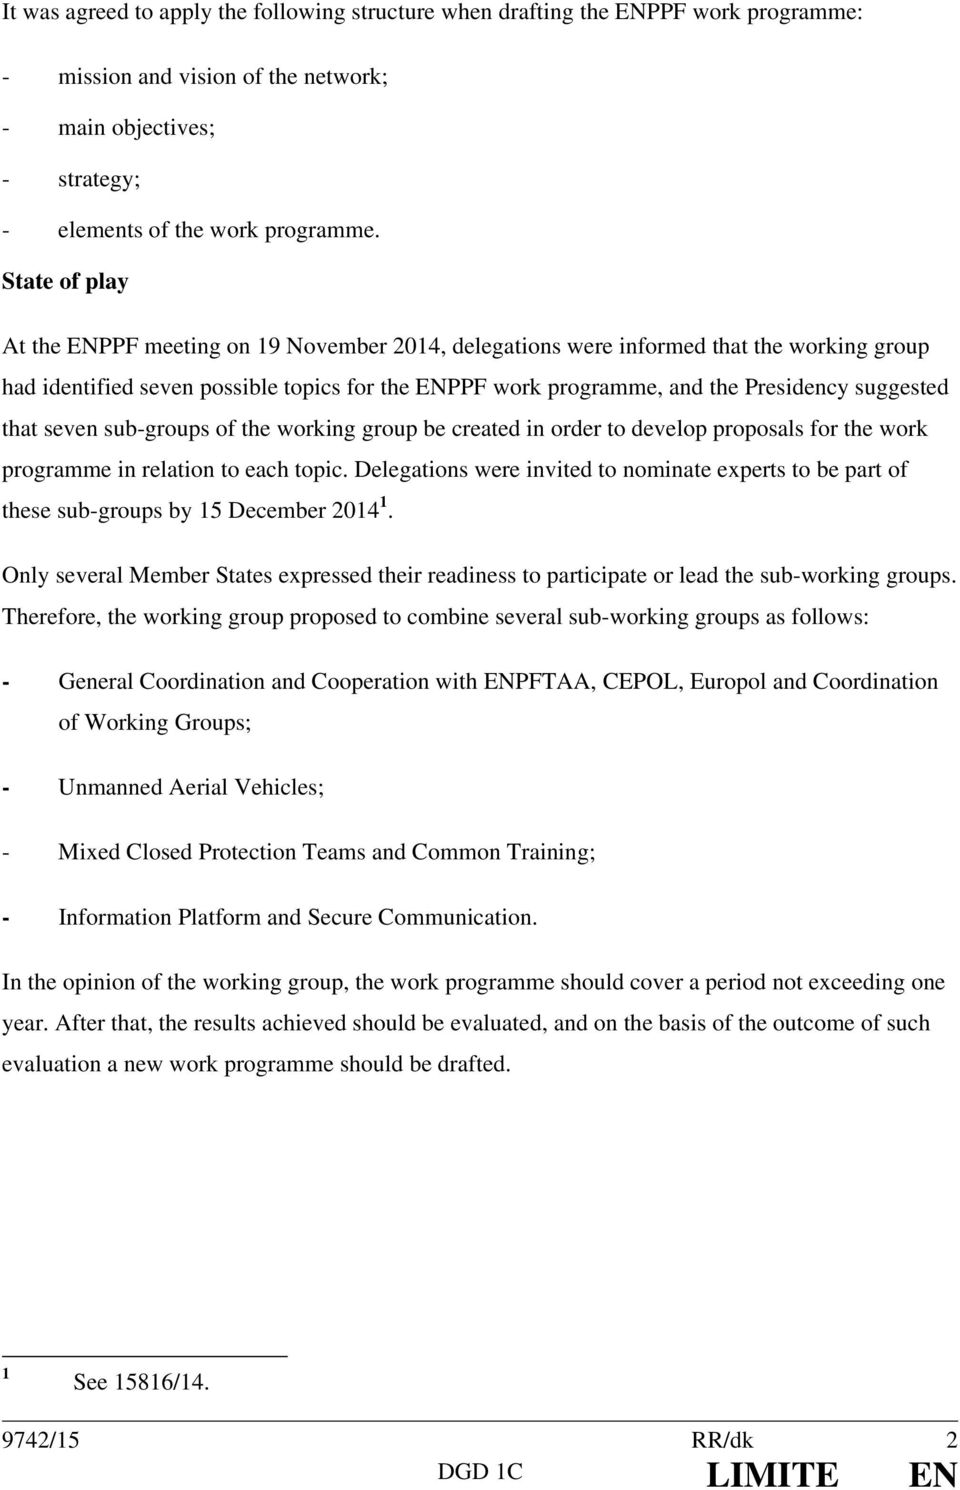 suggested that seven sub-groups of the working group be created in order to develop proposals for the work programme in relation to each topic.